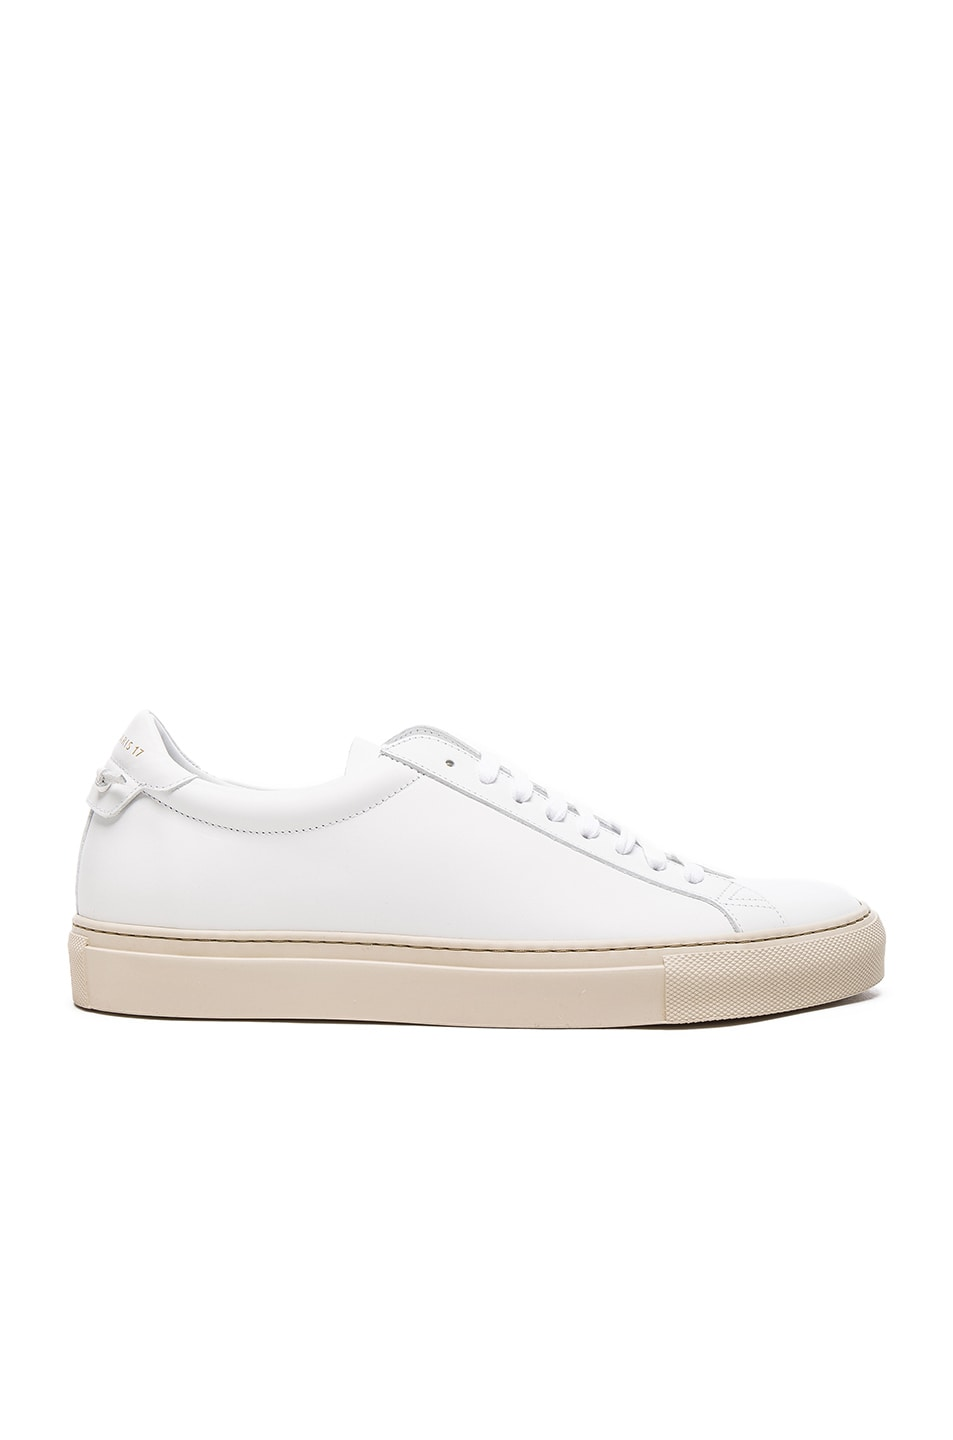 e33d51b9c9cc Image 2 of Givenchy Urban Street Low Top Sneakers in White